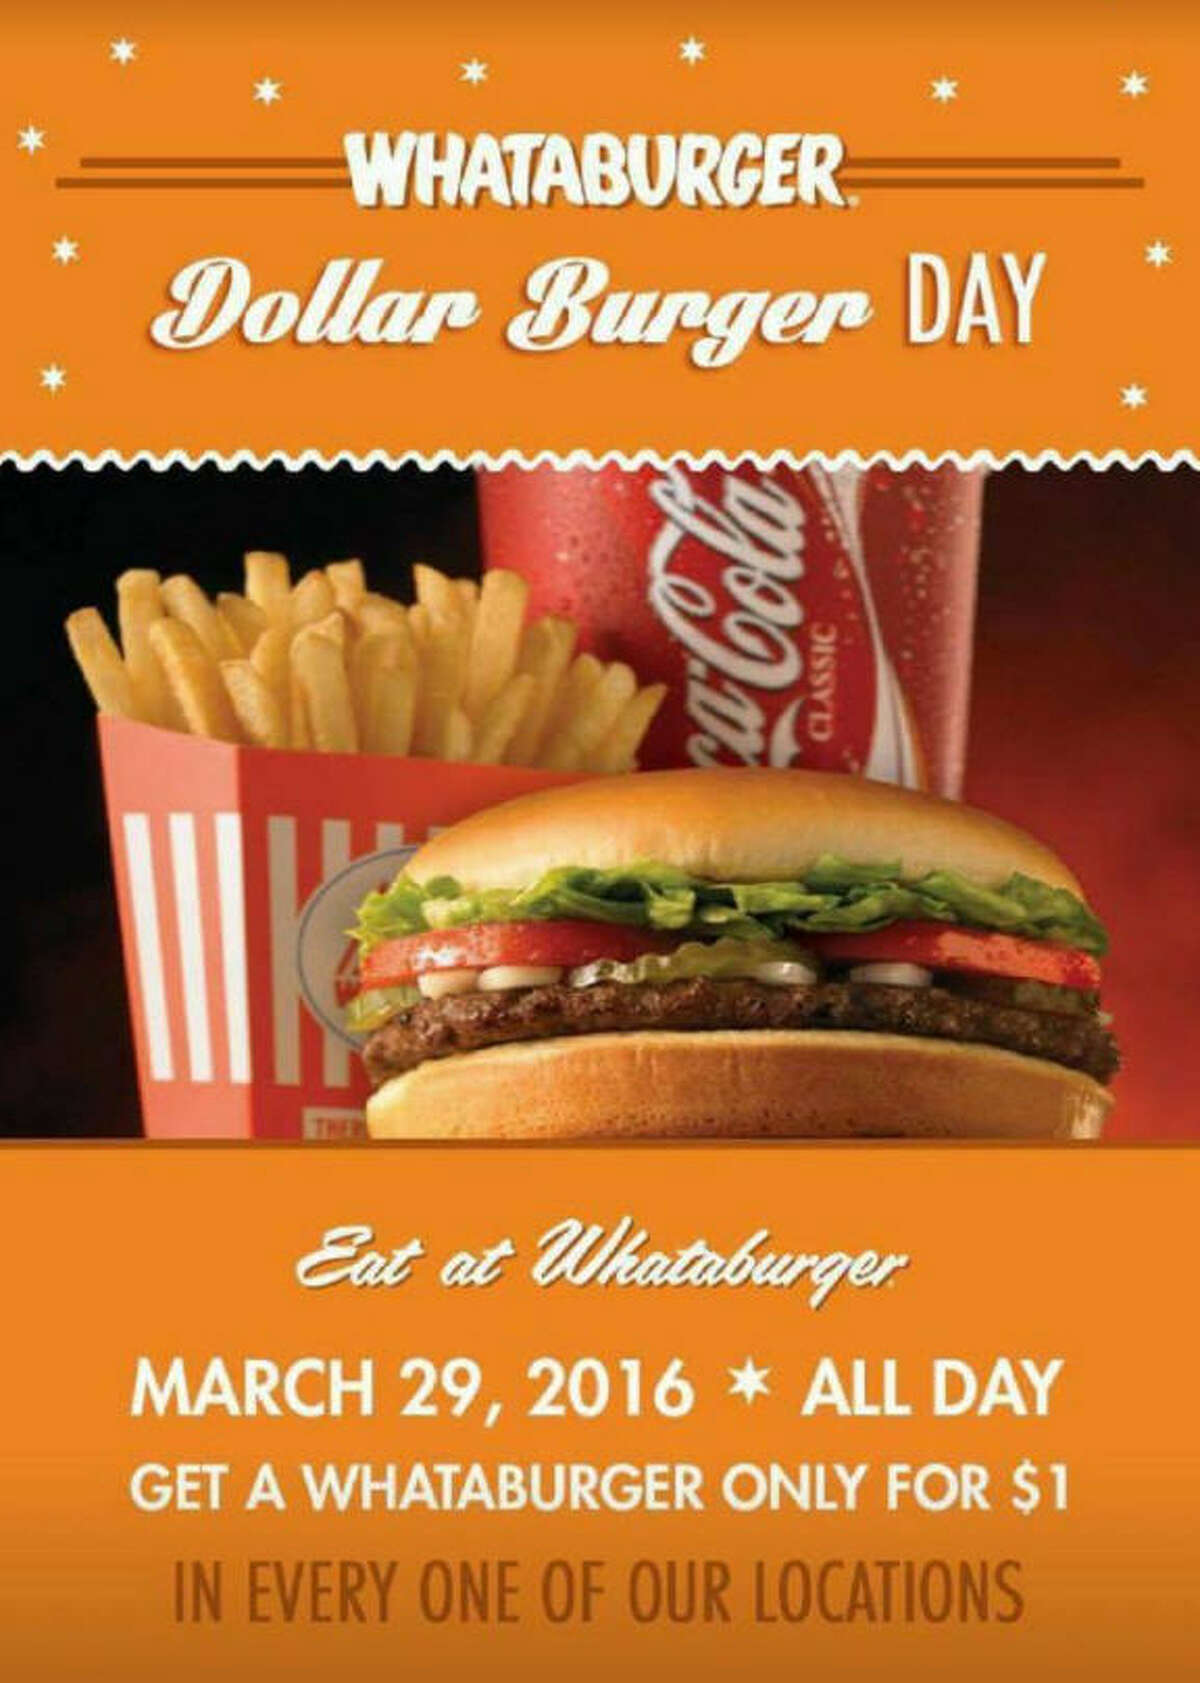 Nope, this isn't happening today at any Whataburger location. It's just a clever hoax born on social media.